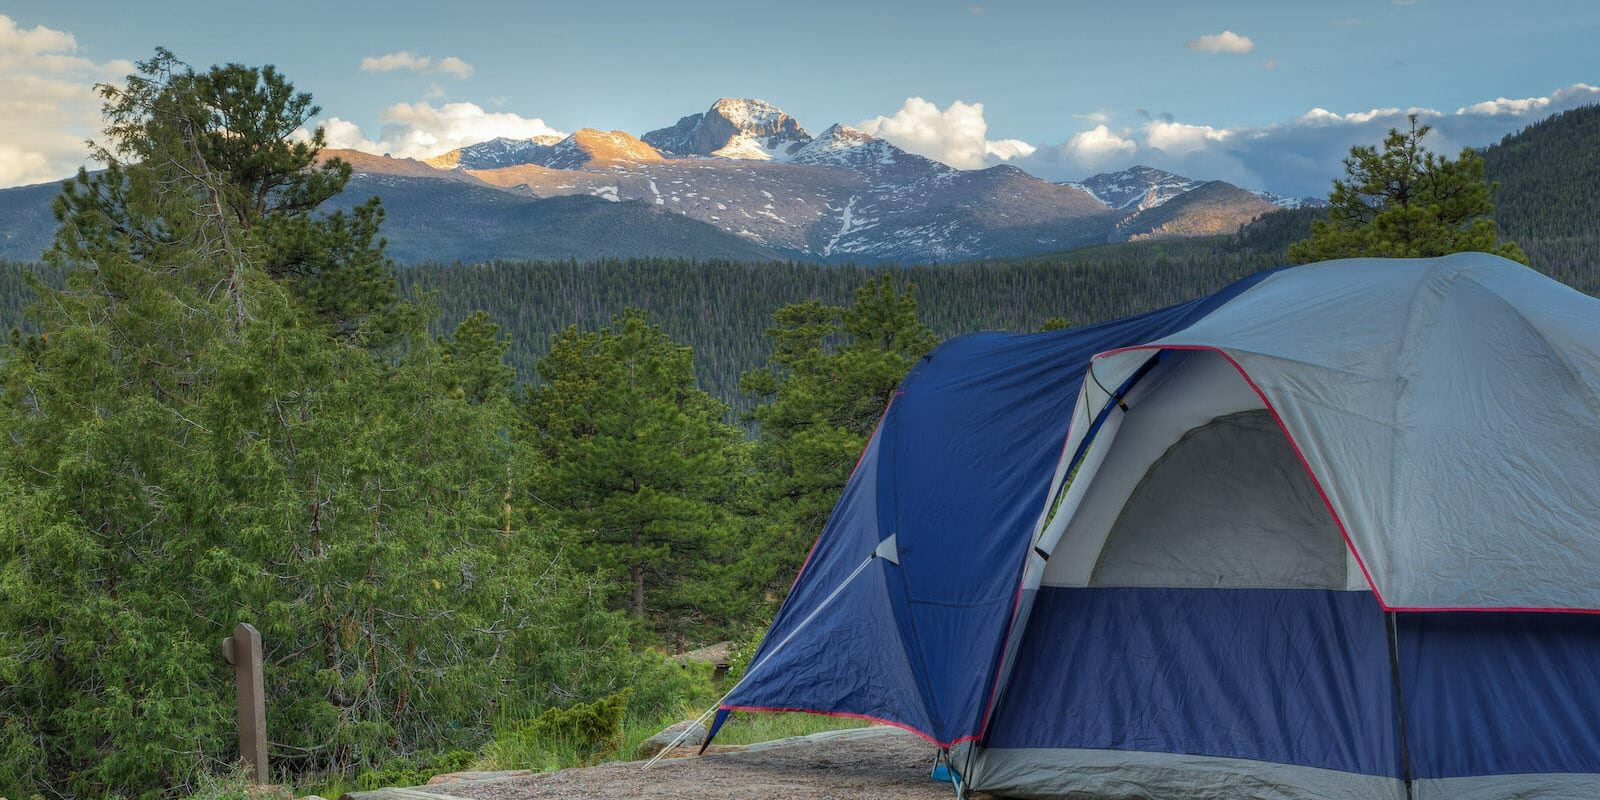 Camping Tent Rocky Mountain National Park Colorado